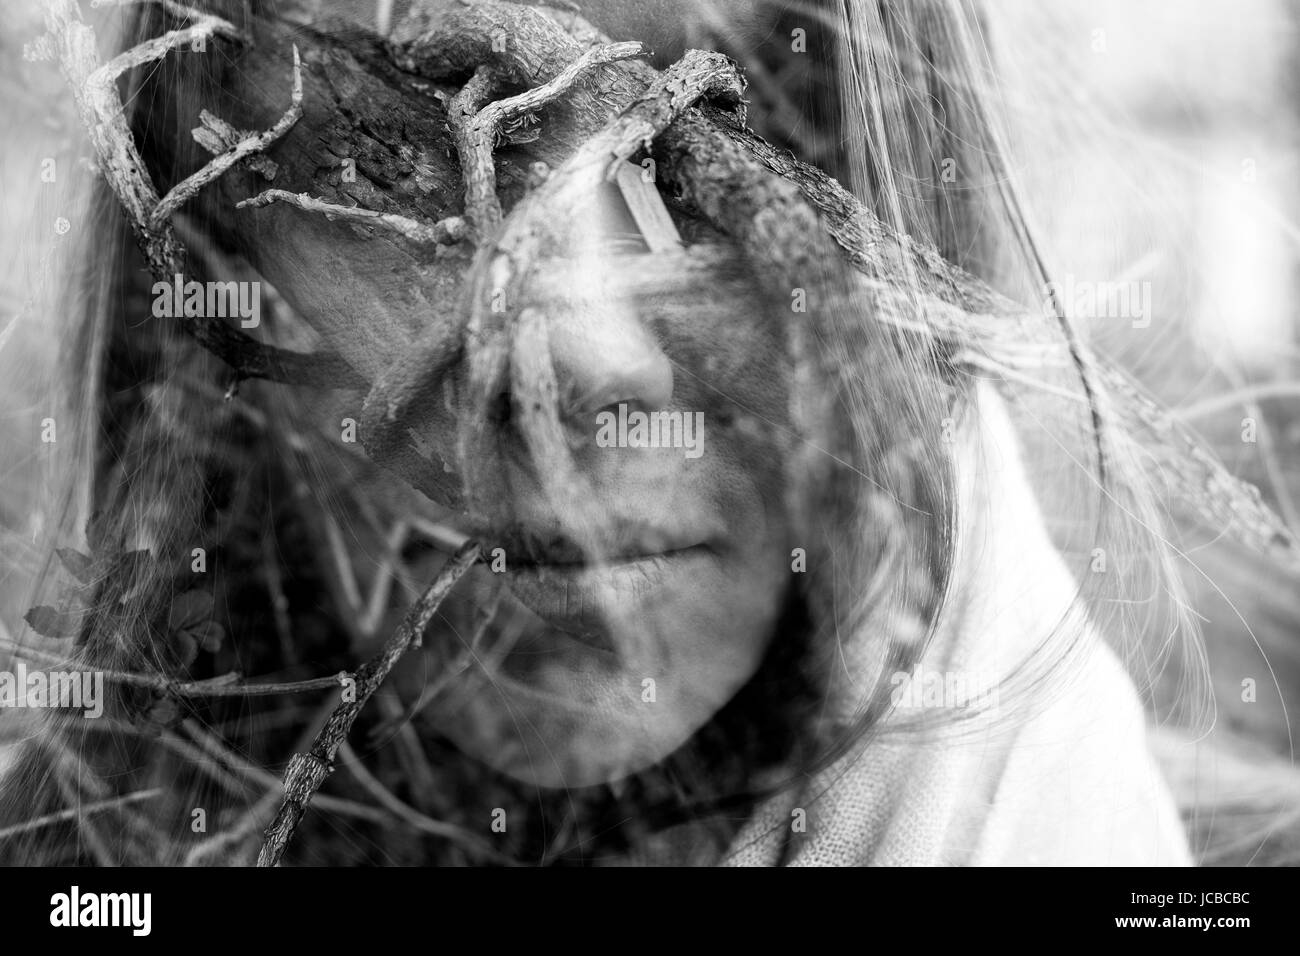 Double exposure creative photo of sad woman - Stock Image